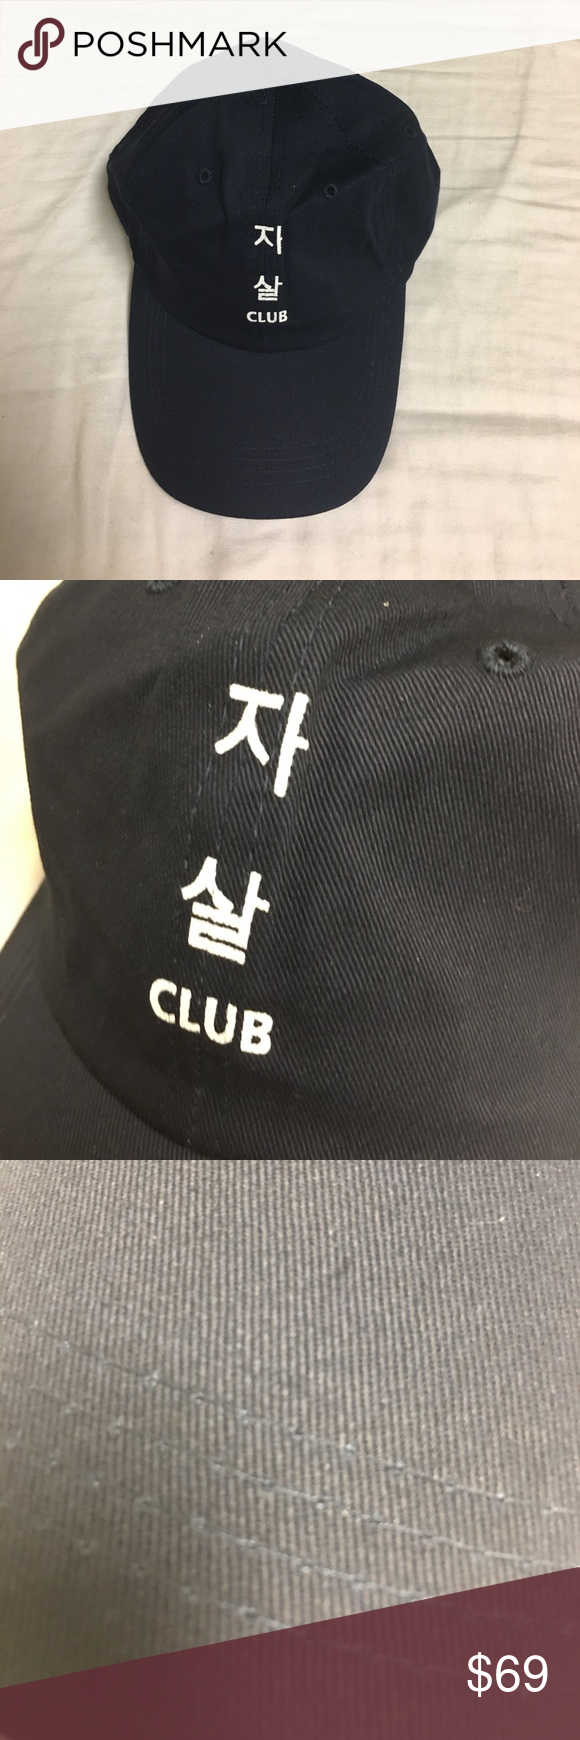 a6b699dd6544 ASSC Navy Blue Korean Dad Hat Brand New. ASSC has no tags. Never worn